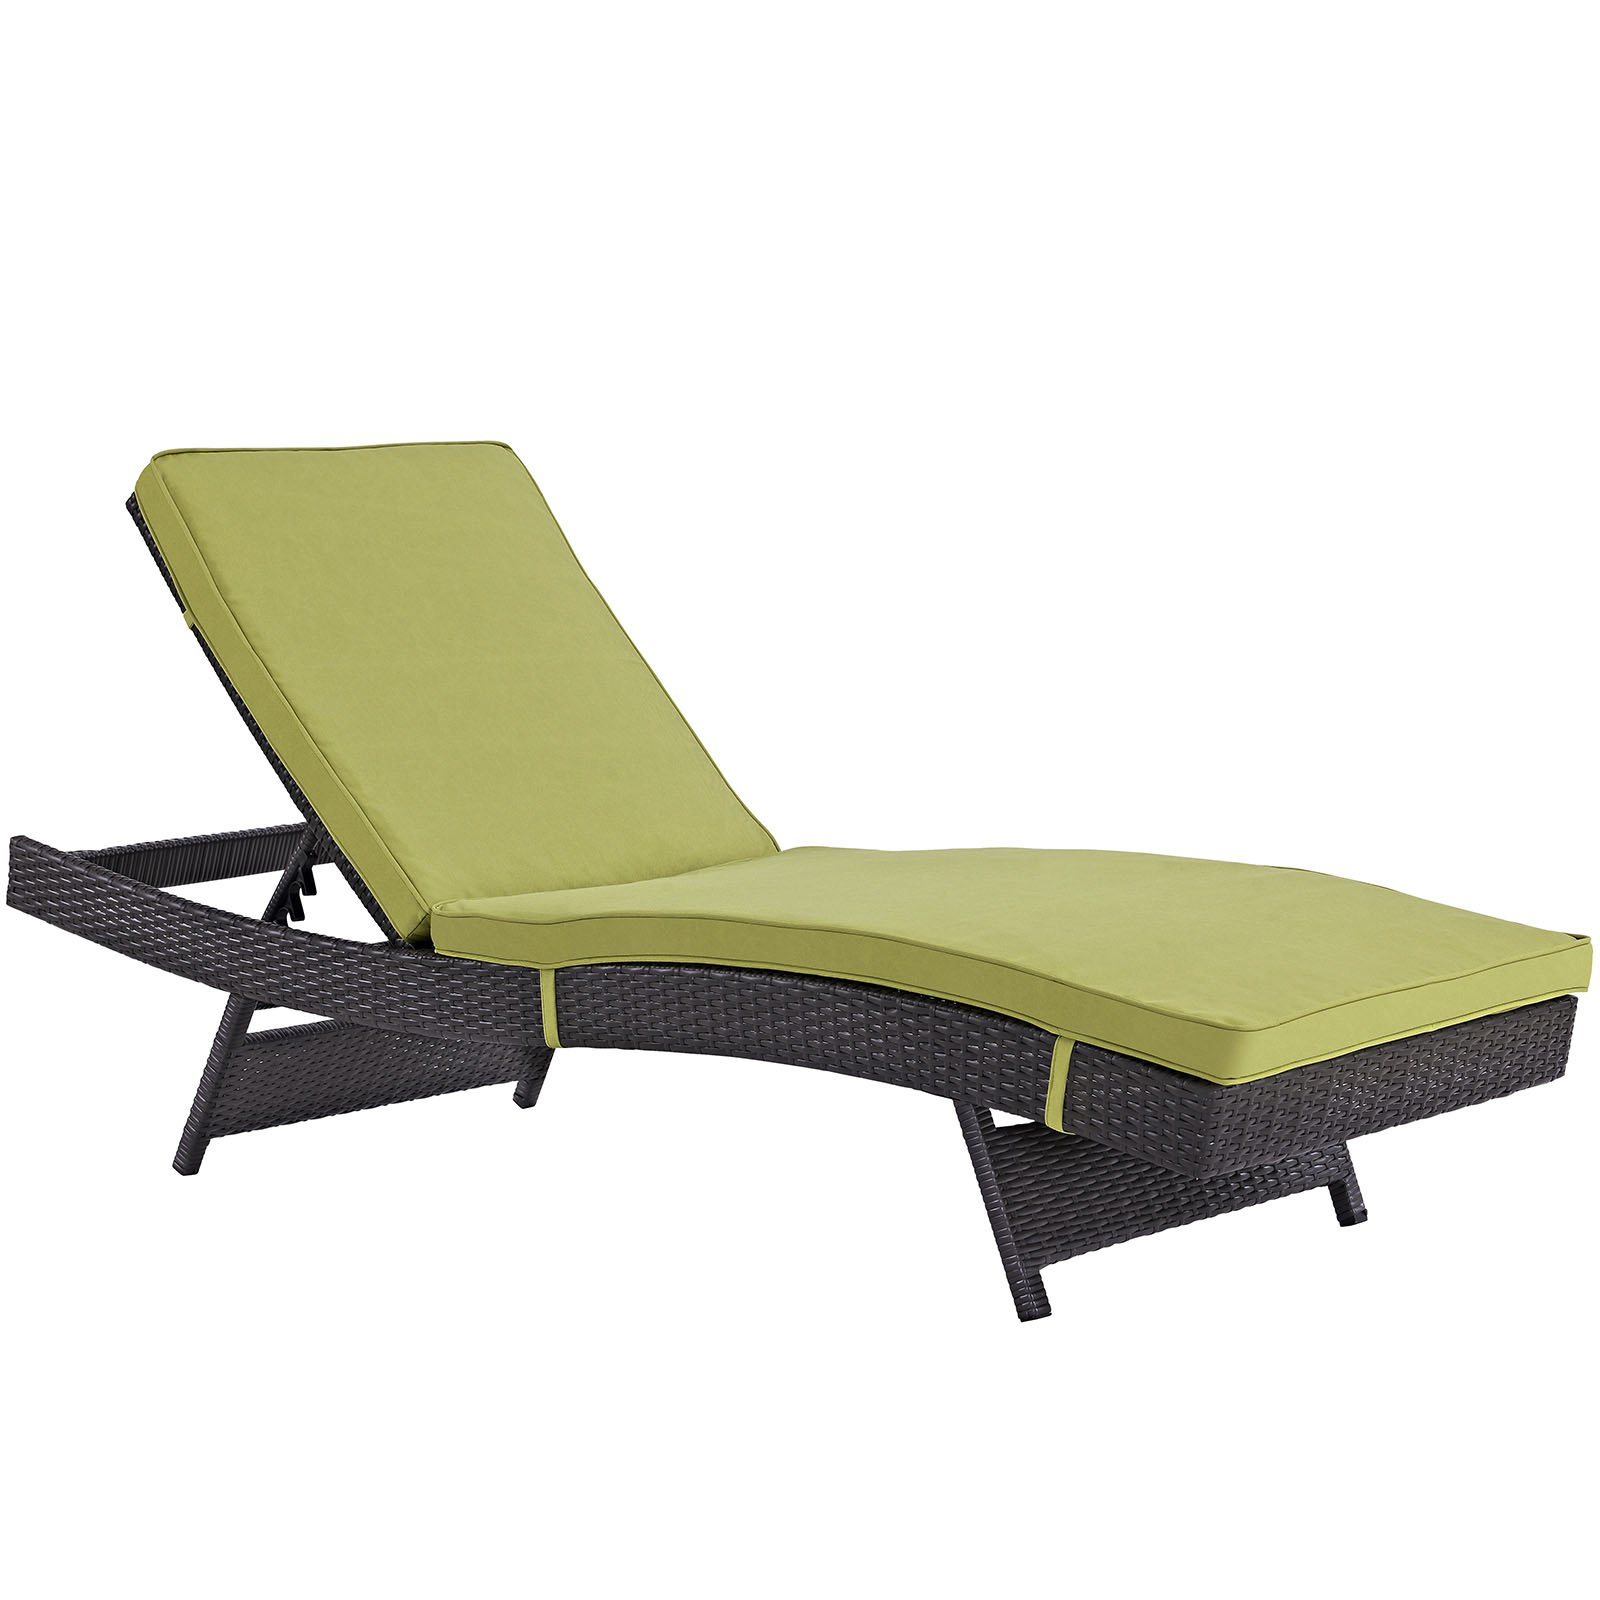 Modway Peer Wicker Outdoor Chaise Lounge